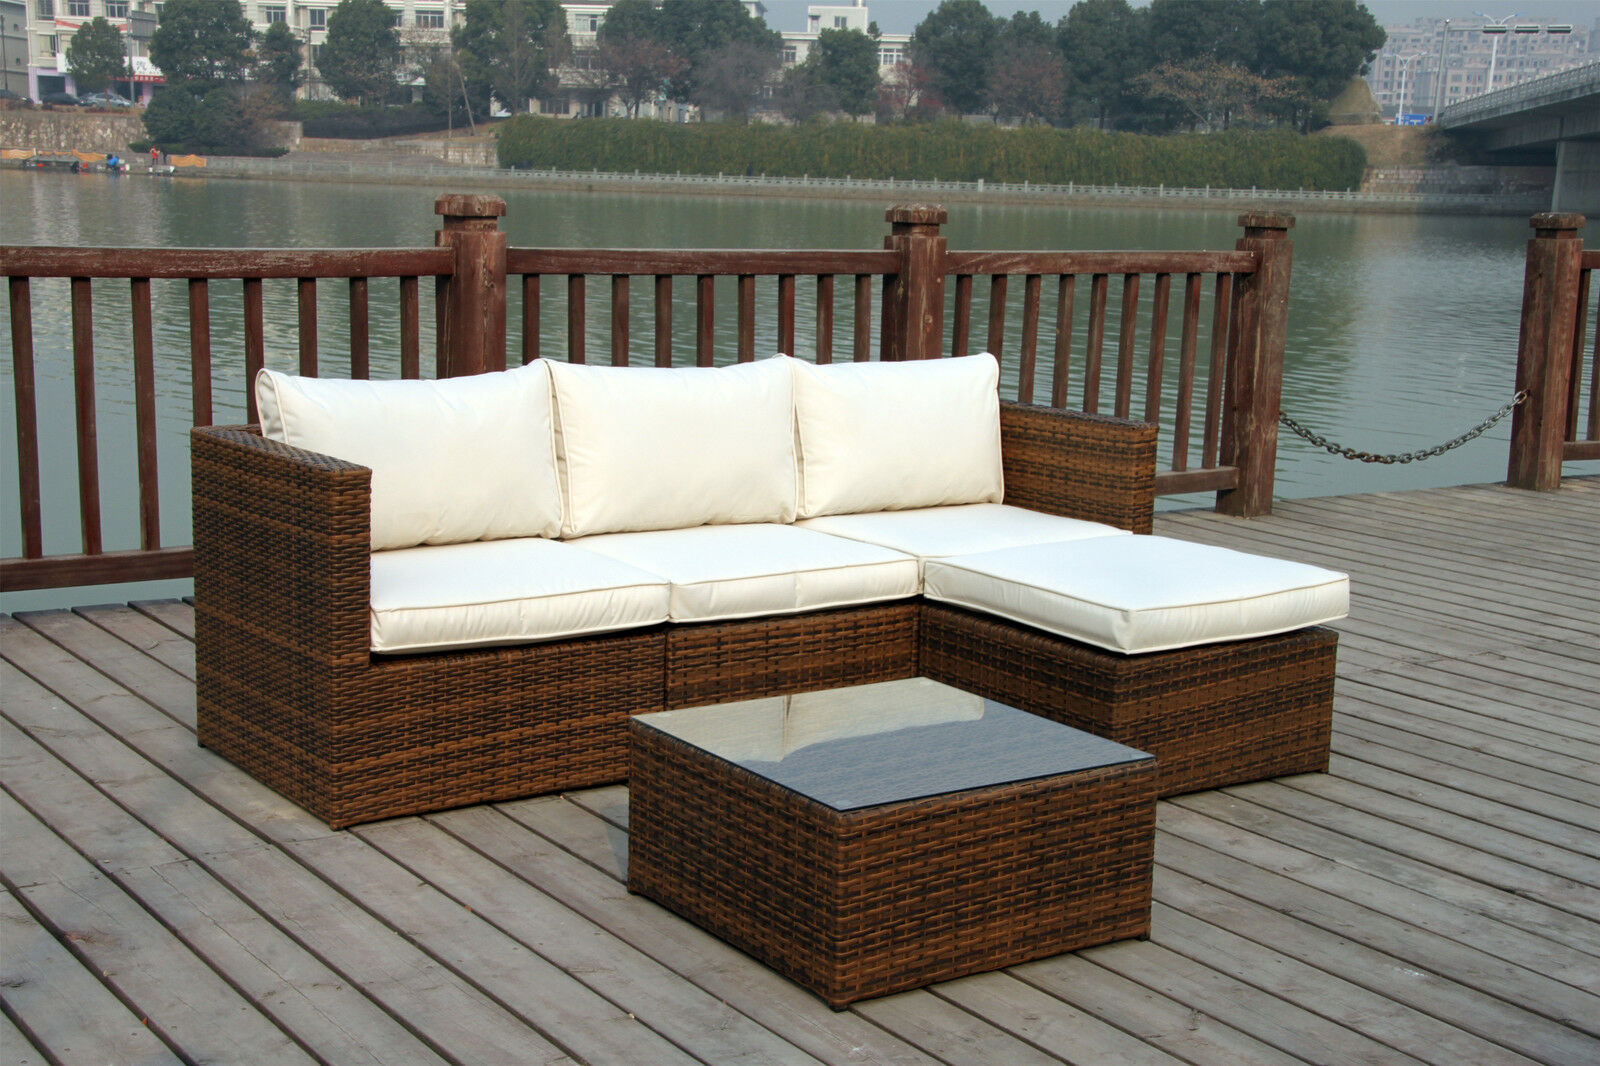 Rattan Corner Sofa Set Ebay New Rattan Garden Wicker Outdoor Conservatory Corner Sofa